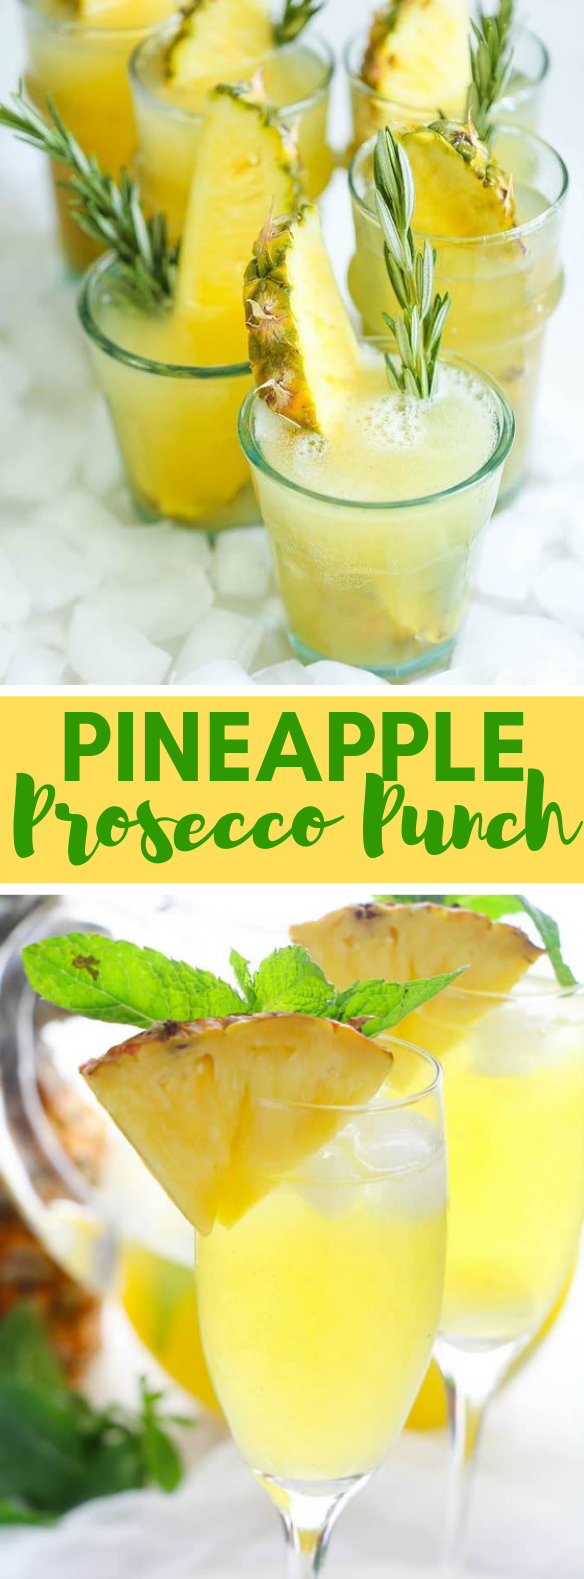 PINEAPPLE PROSECCO PUNCH #drinks #cocktails